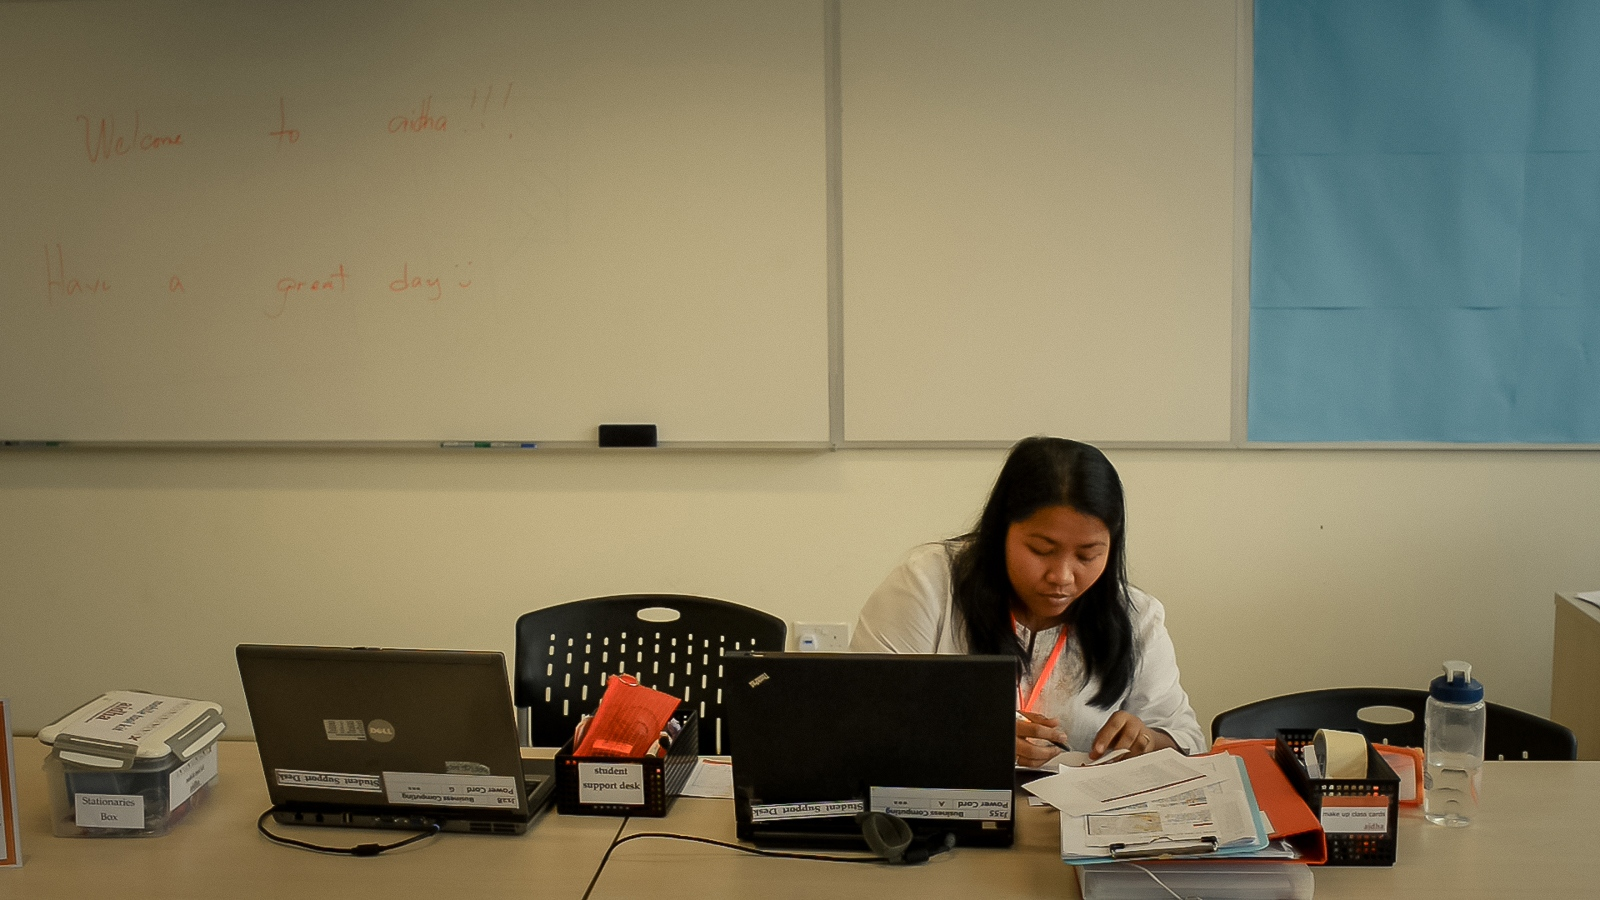 Janelyn Pascua from the Philippines in a school classroom which serves as a temporary office for 'Aidha' - a business school for domestic workers in Singapore. 'Jena' works as a domestic worker and volunteers with Aidha during some of her days off. She has a farm in the Philippines which she runs with her husband. The money she earns in Singapore is invested in her business in the Philippines. Prior to volunteering with Aidha, she studied business management with the organisation.